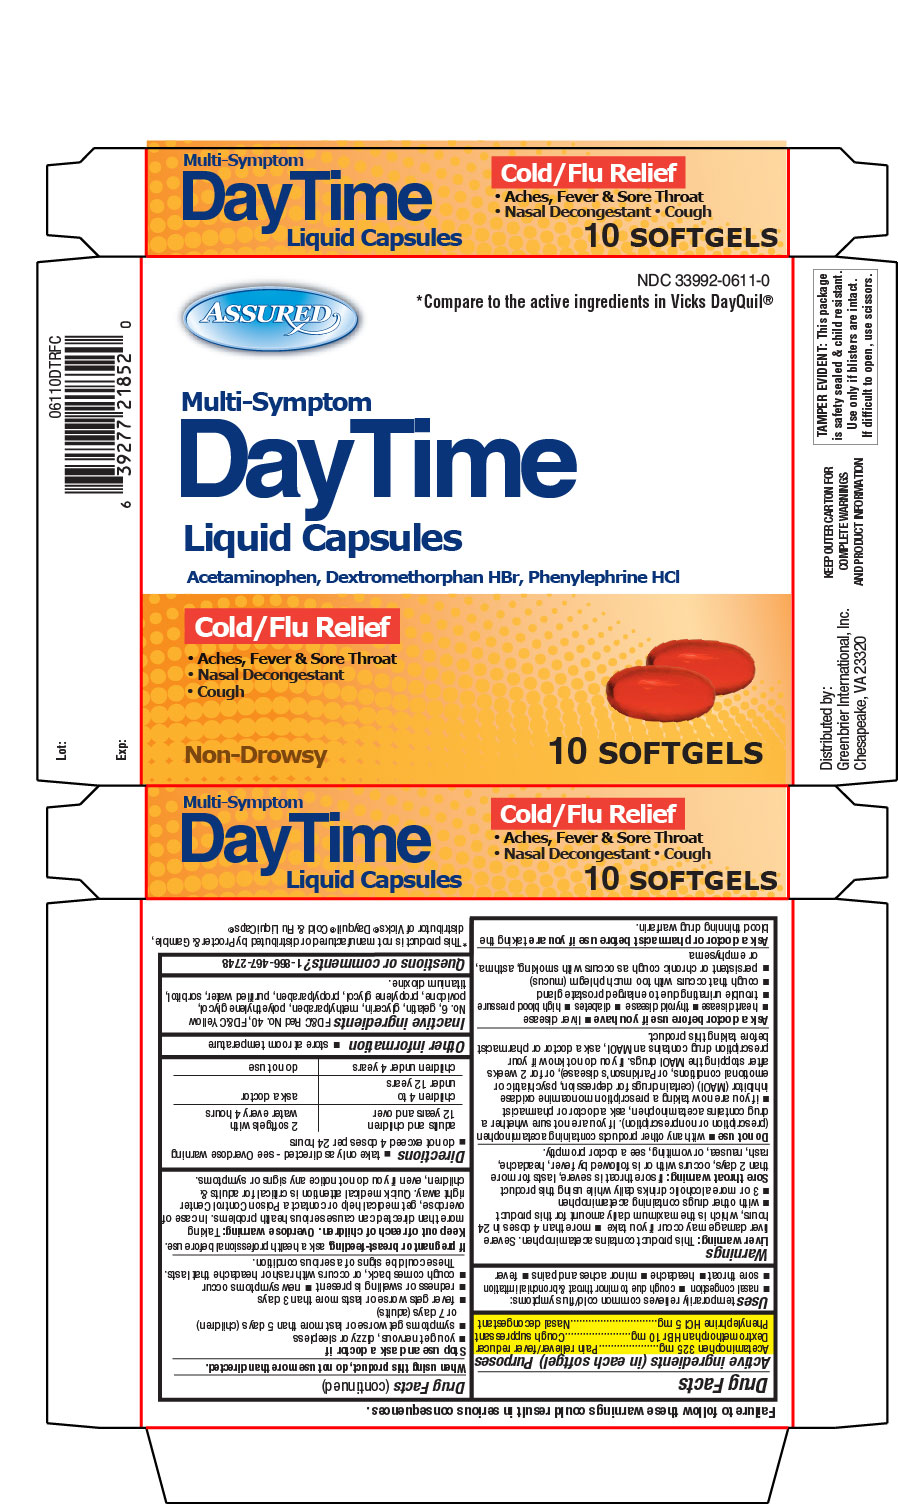 dayquil severe dosage instructions